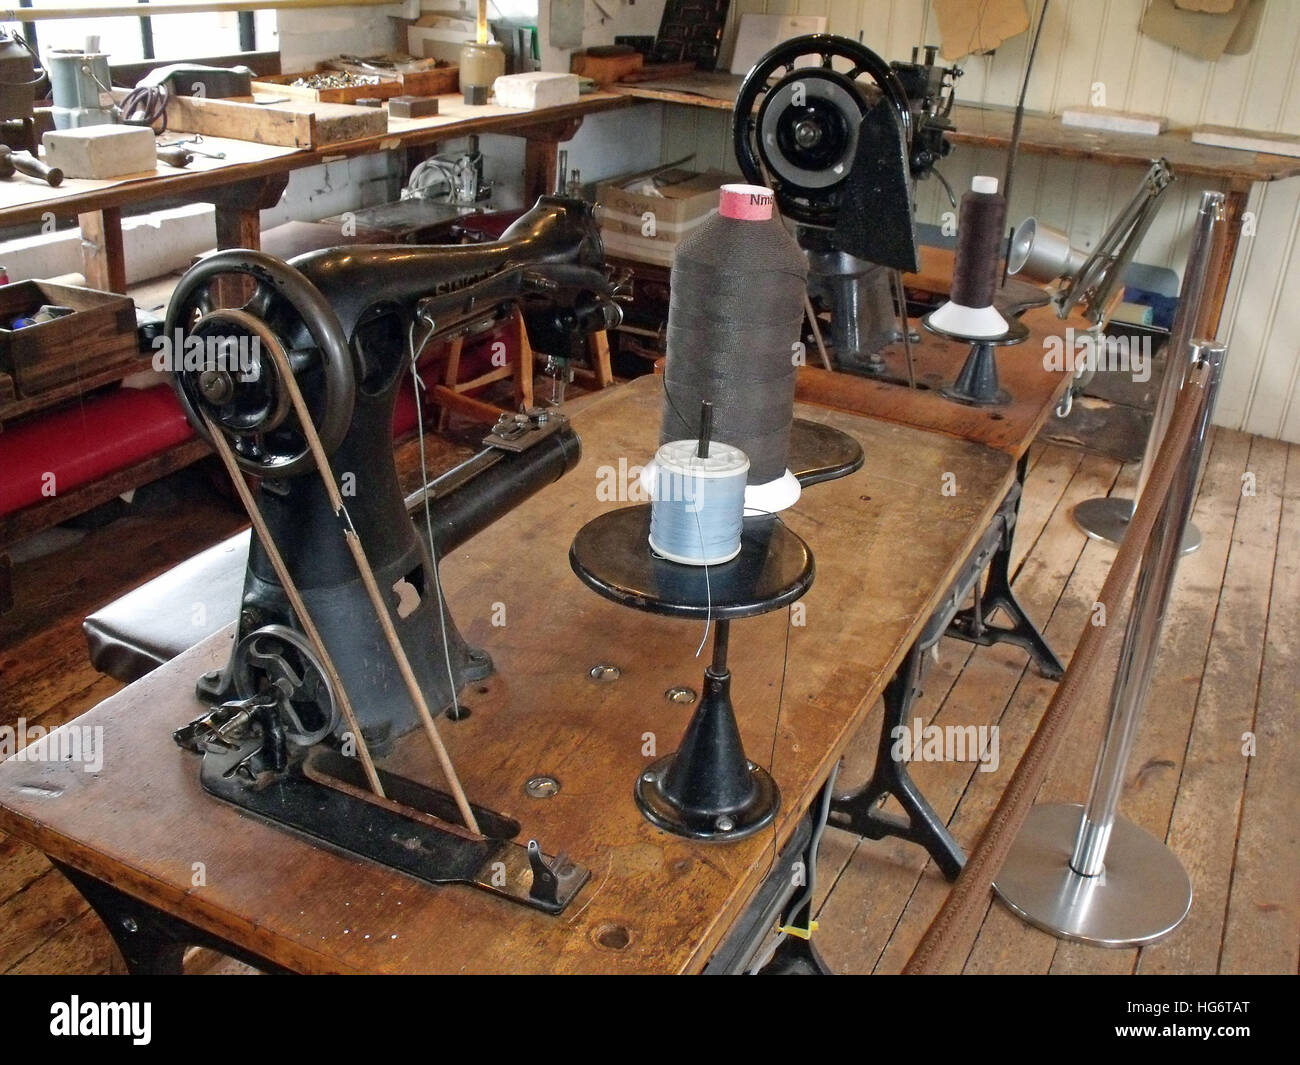 Motorised Sewing machine in a leather workshop,Walsall,west Midlands,England,UK - Stock Image